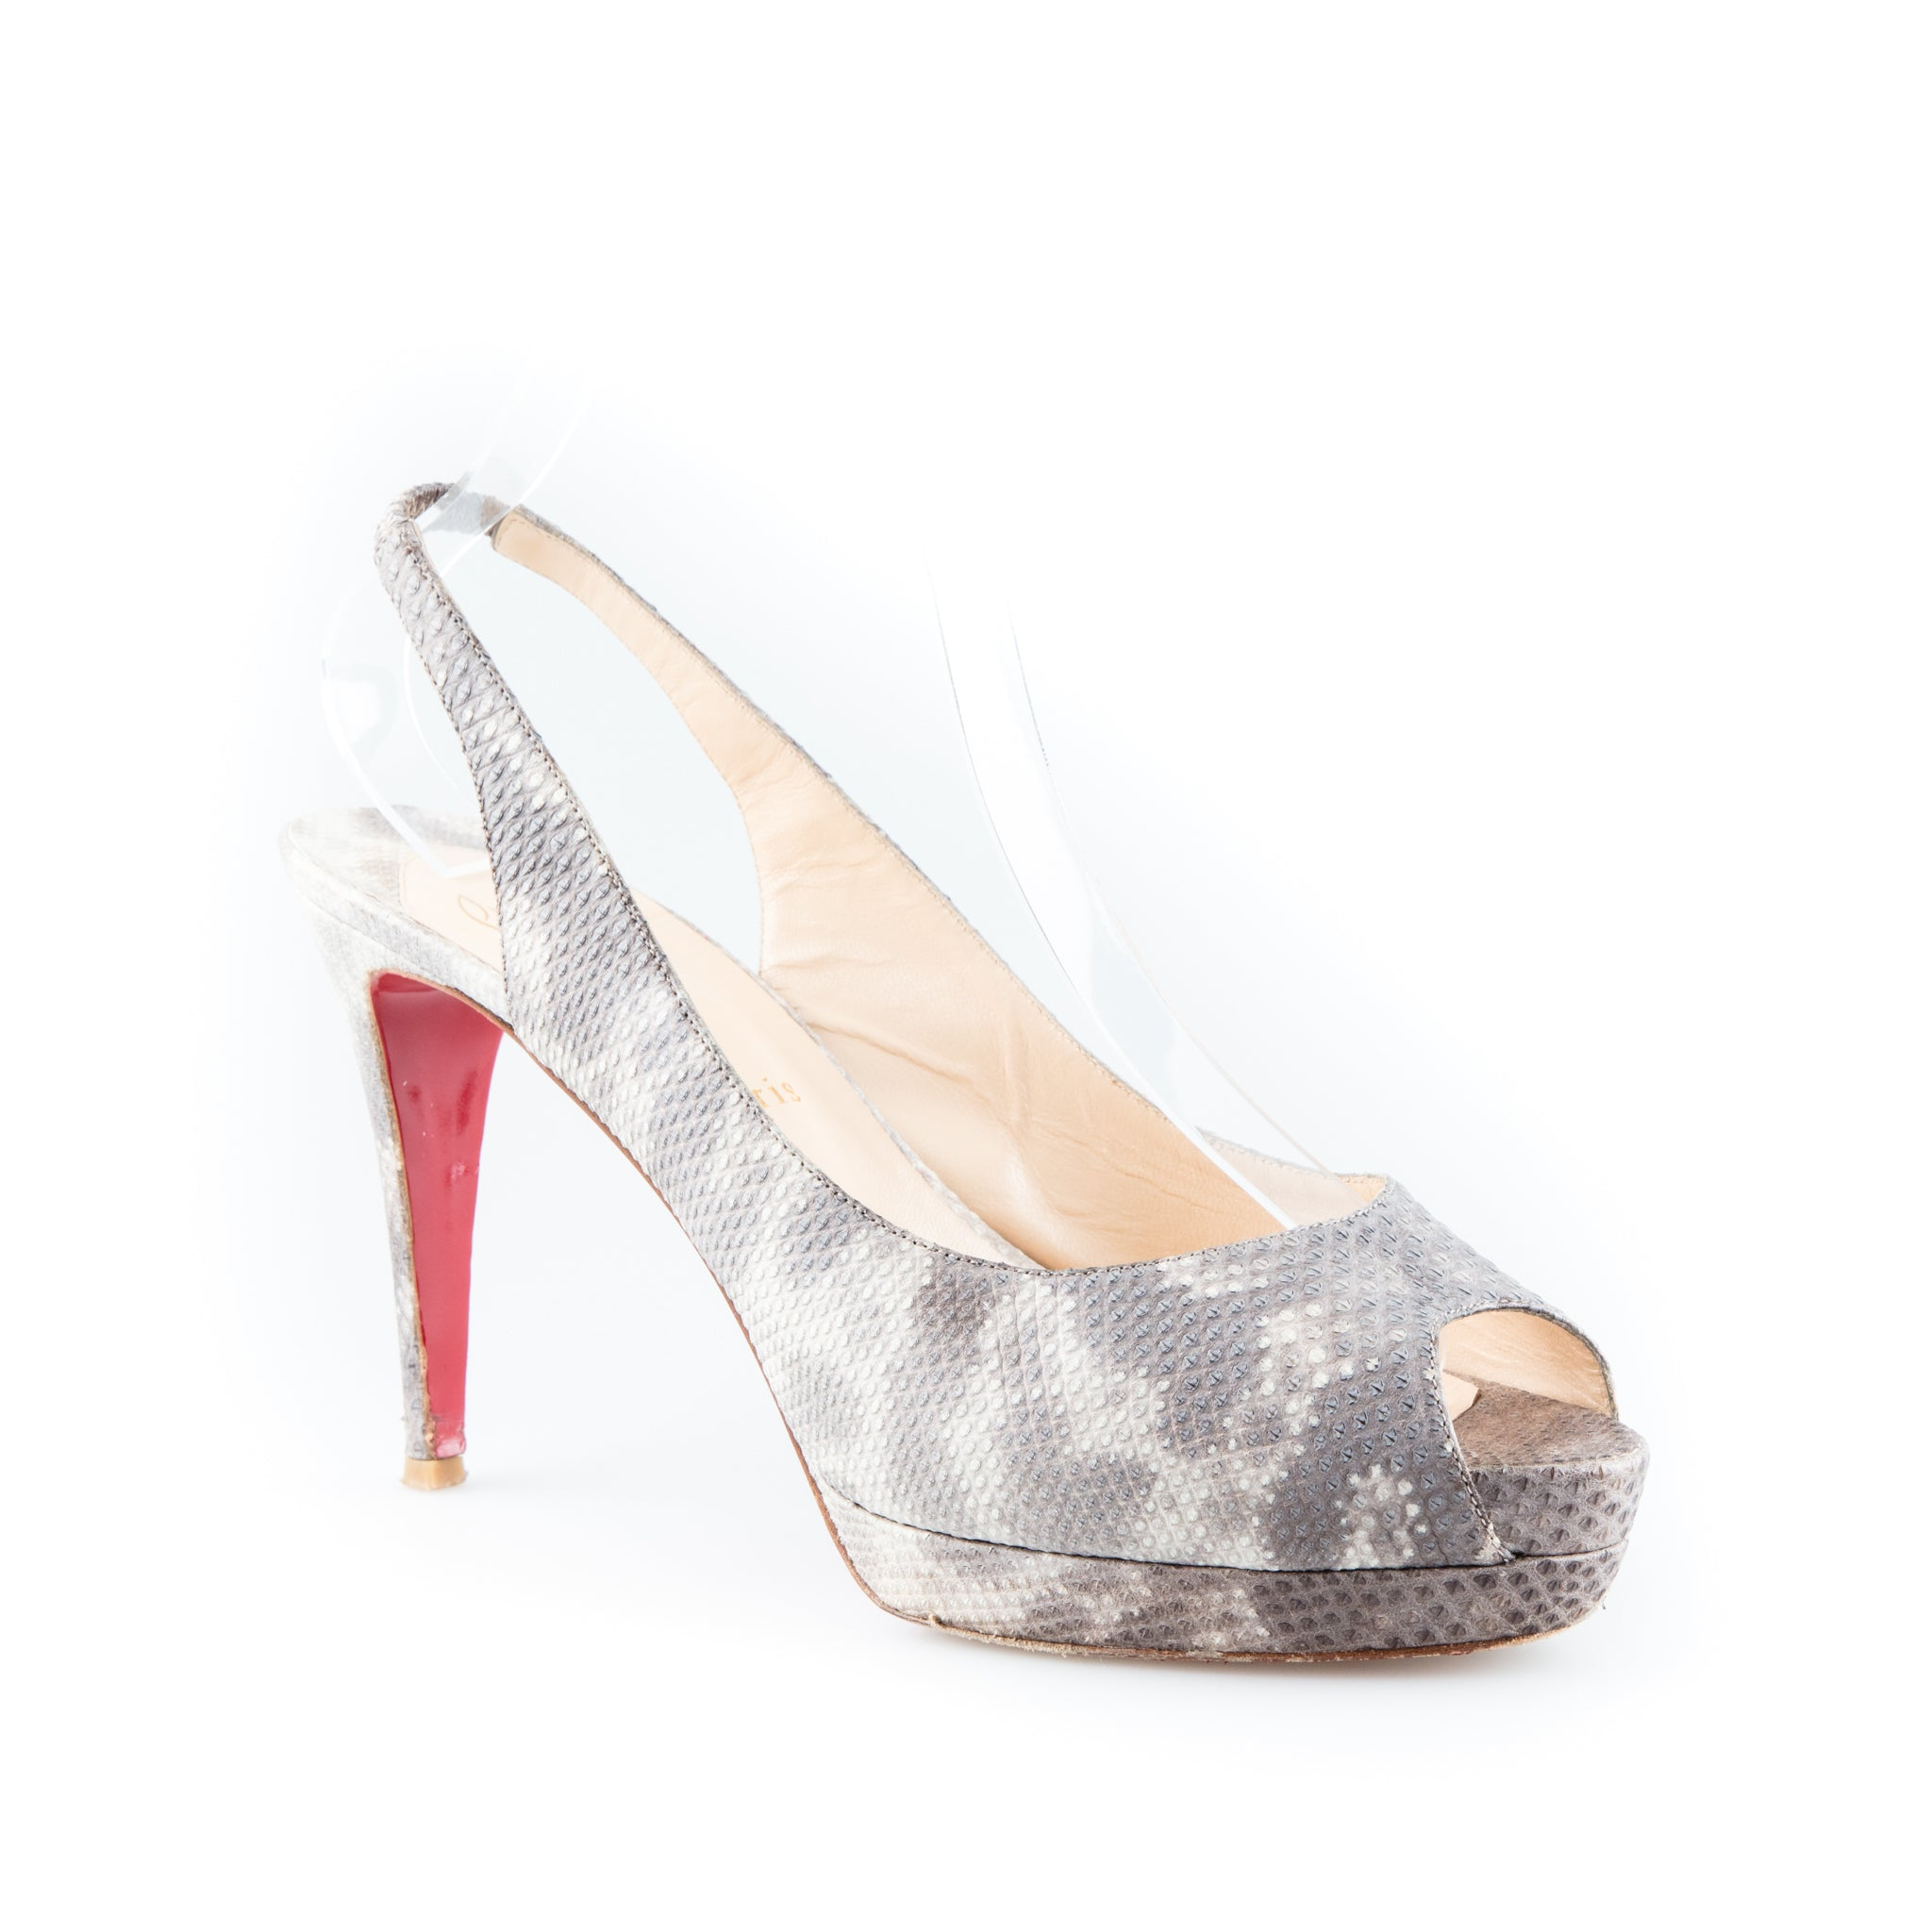 buy online ad0b1 a7b0f Christian Louboutin Snakeskin Embossed Leather Slingback Sandals